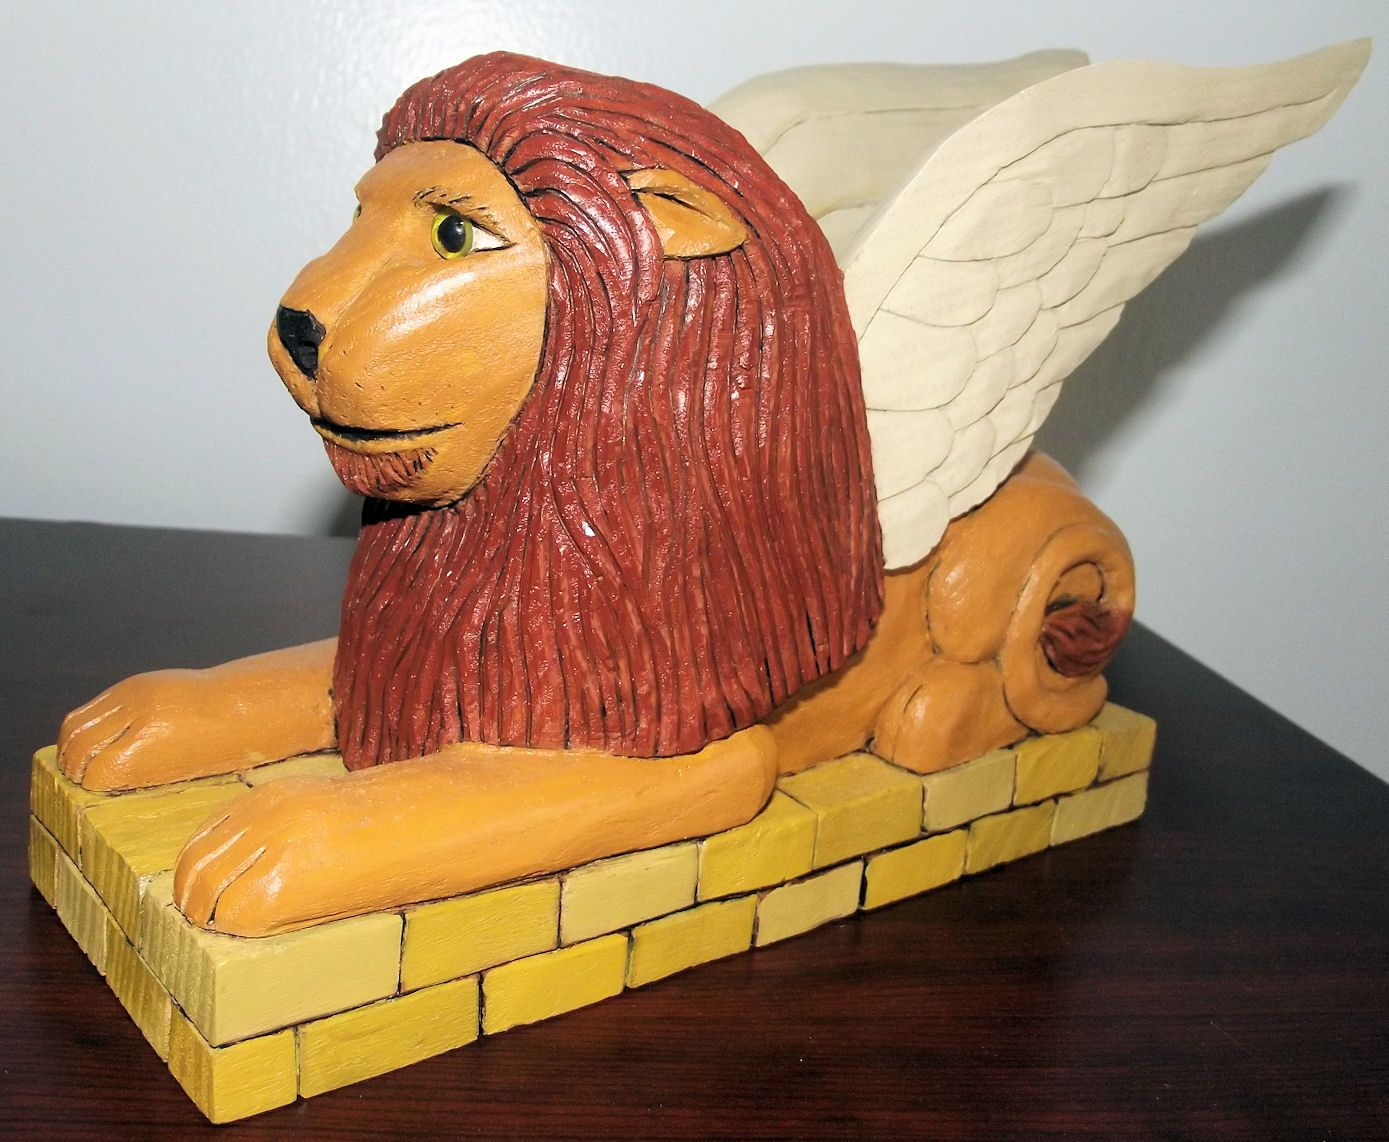 Carved by Kevin Patch from a Shawn Cipa pattern